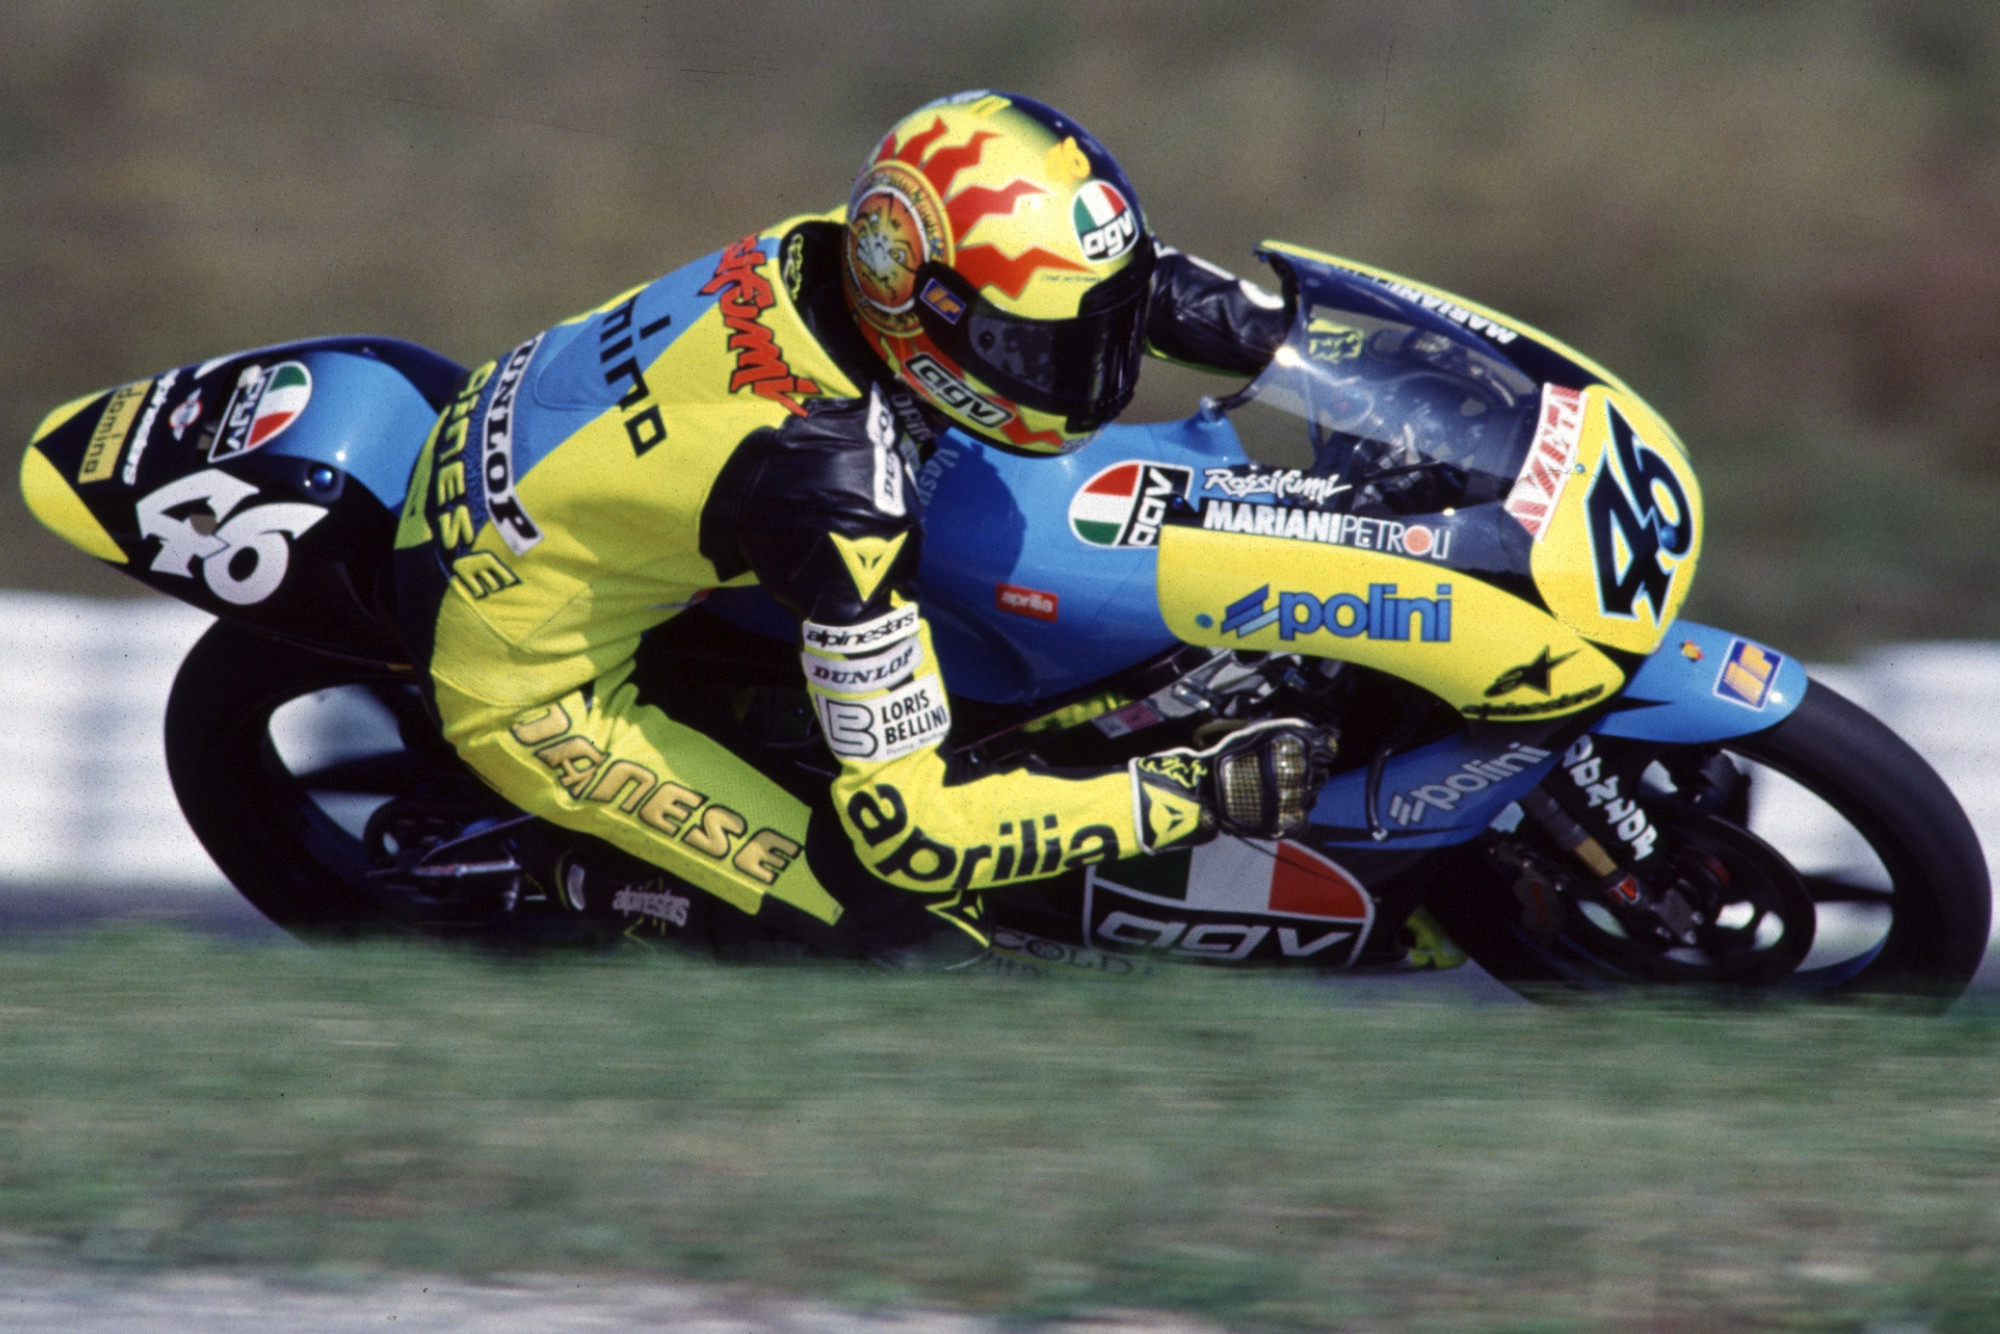 Happy 24th MotoGP birthday to Valentino Rossi!